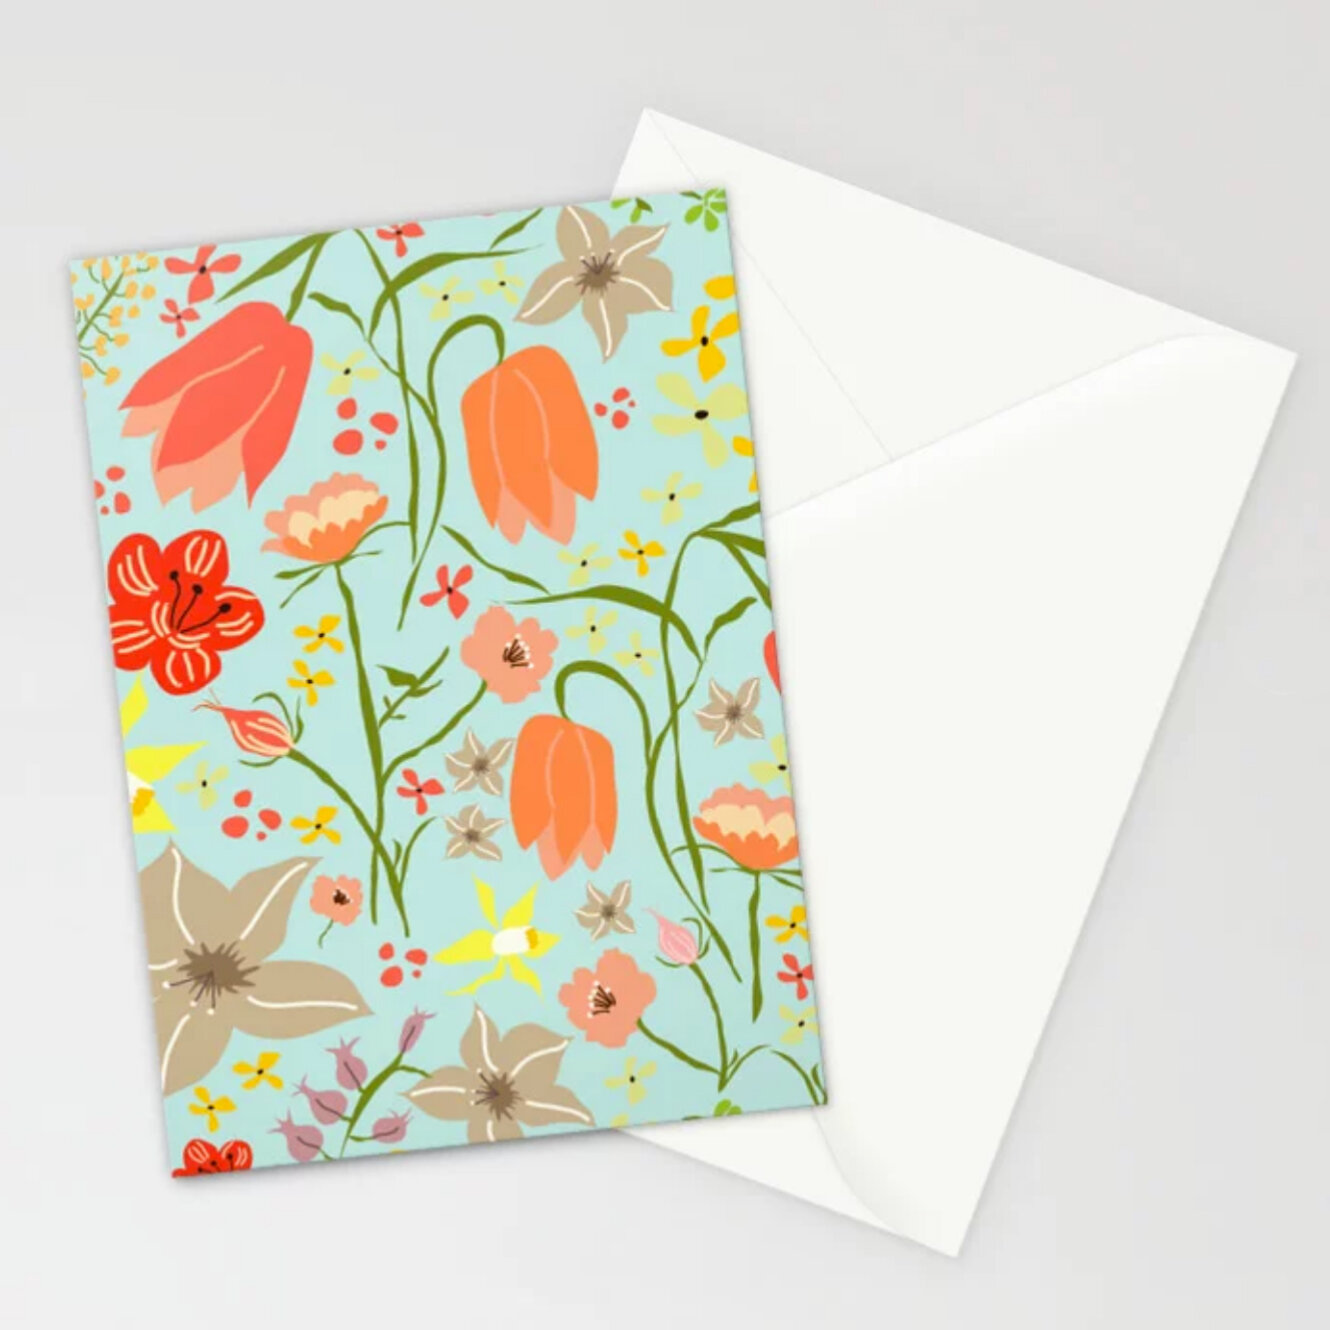 Wildflowers-blue-greetingcard-gingerdeverell.jpg